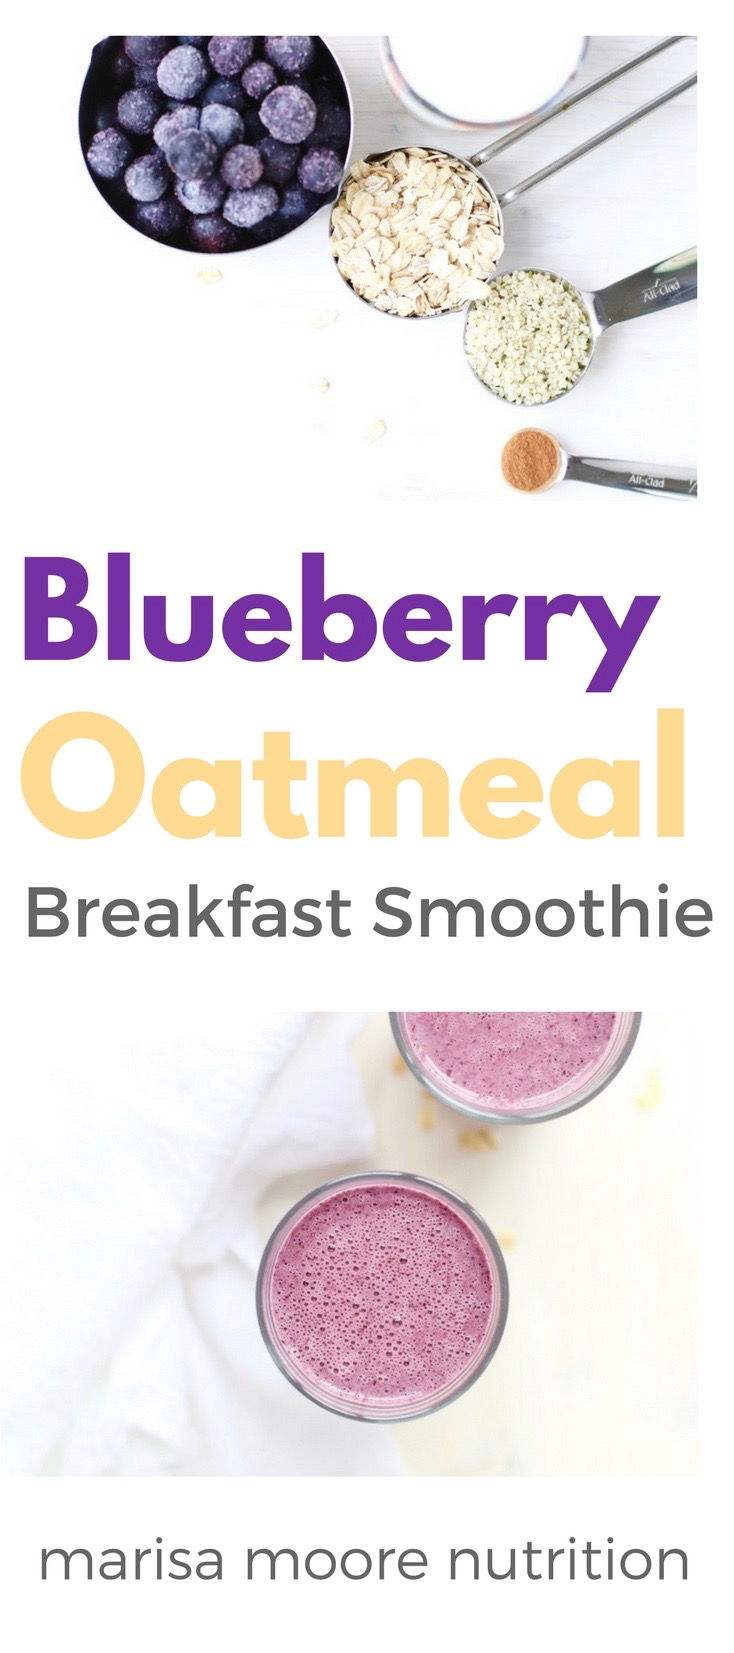 Blueberry Oatmeal Breakfast Smoothie PIN